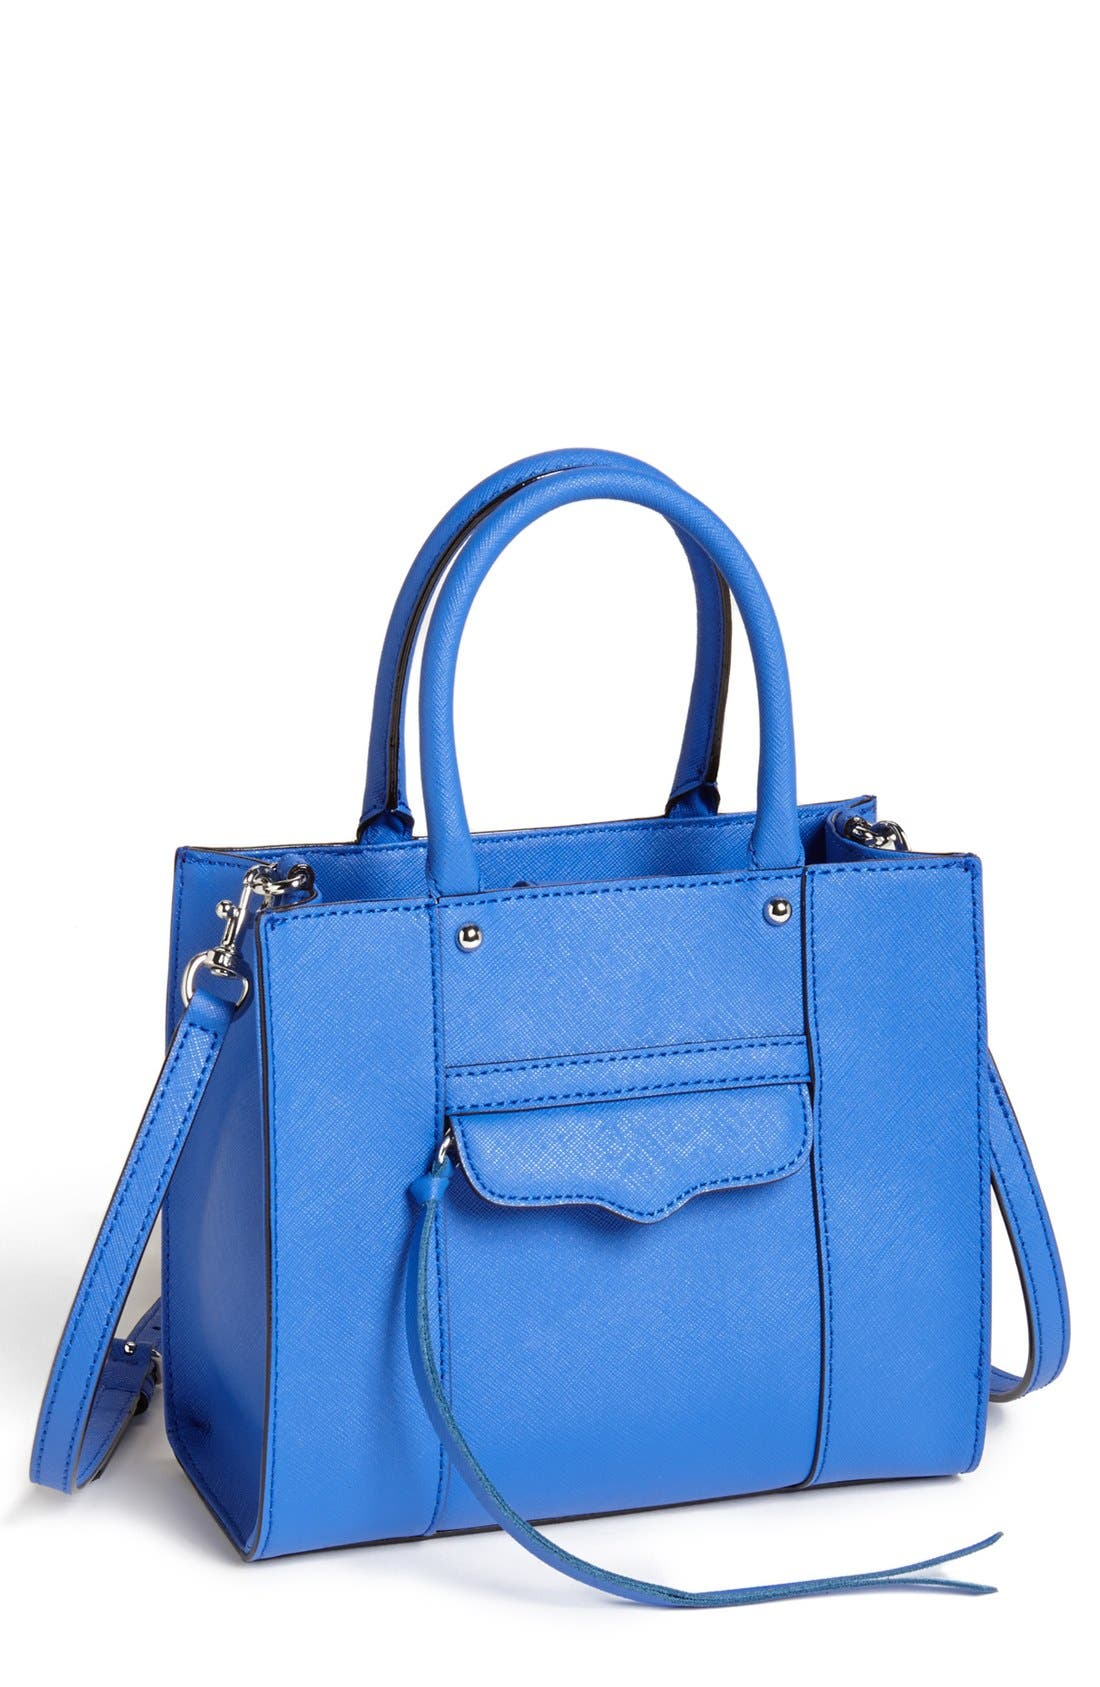 'Mini MAB Tote' Crossbody Bag,                             Main thumbnail 22, color,